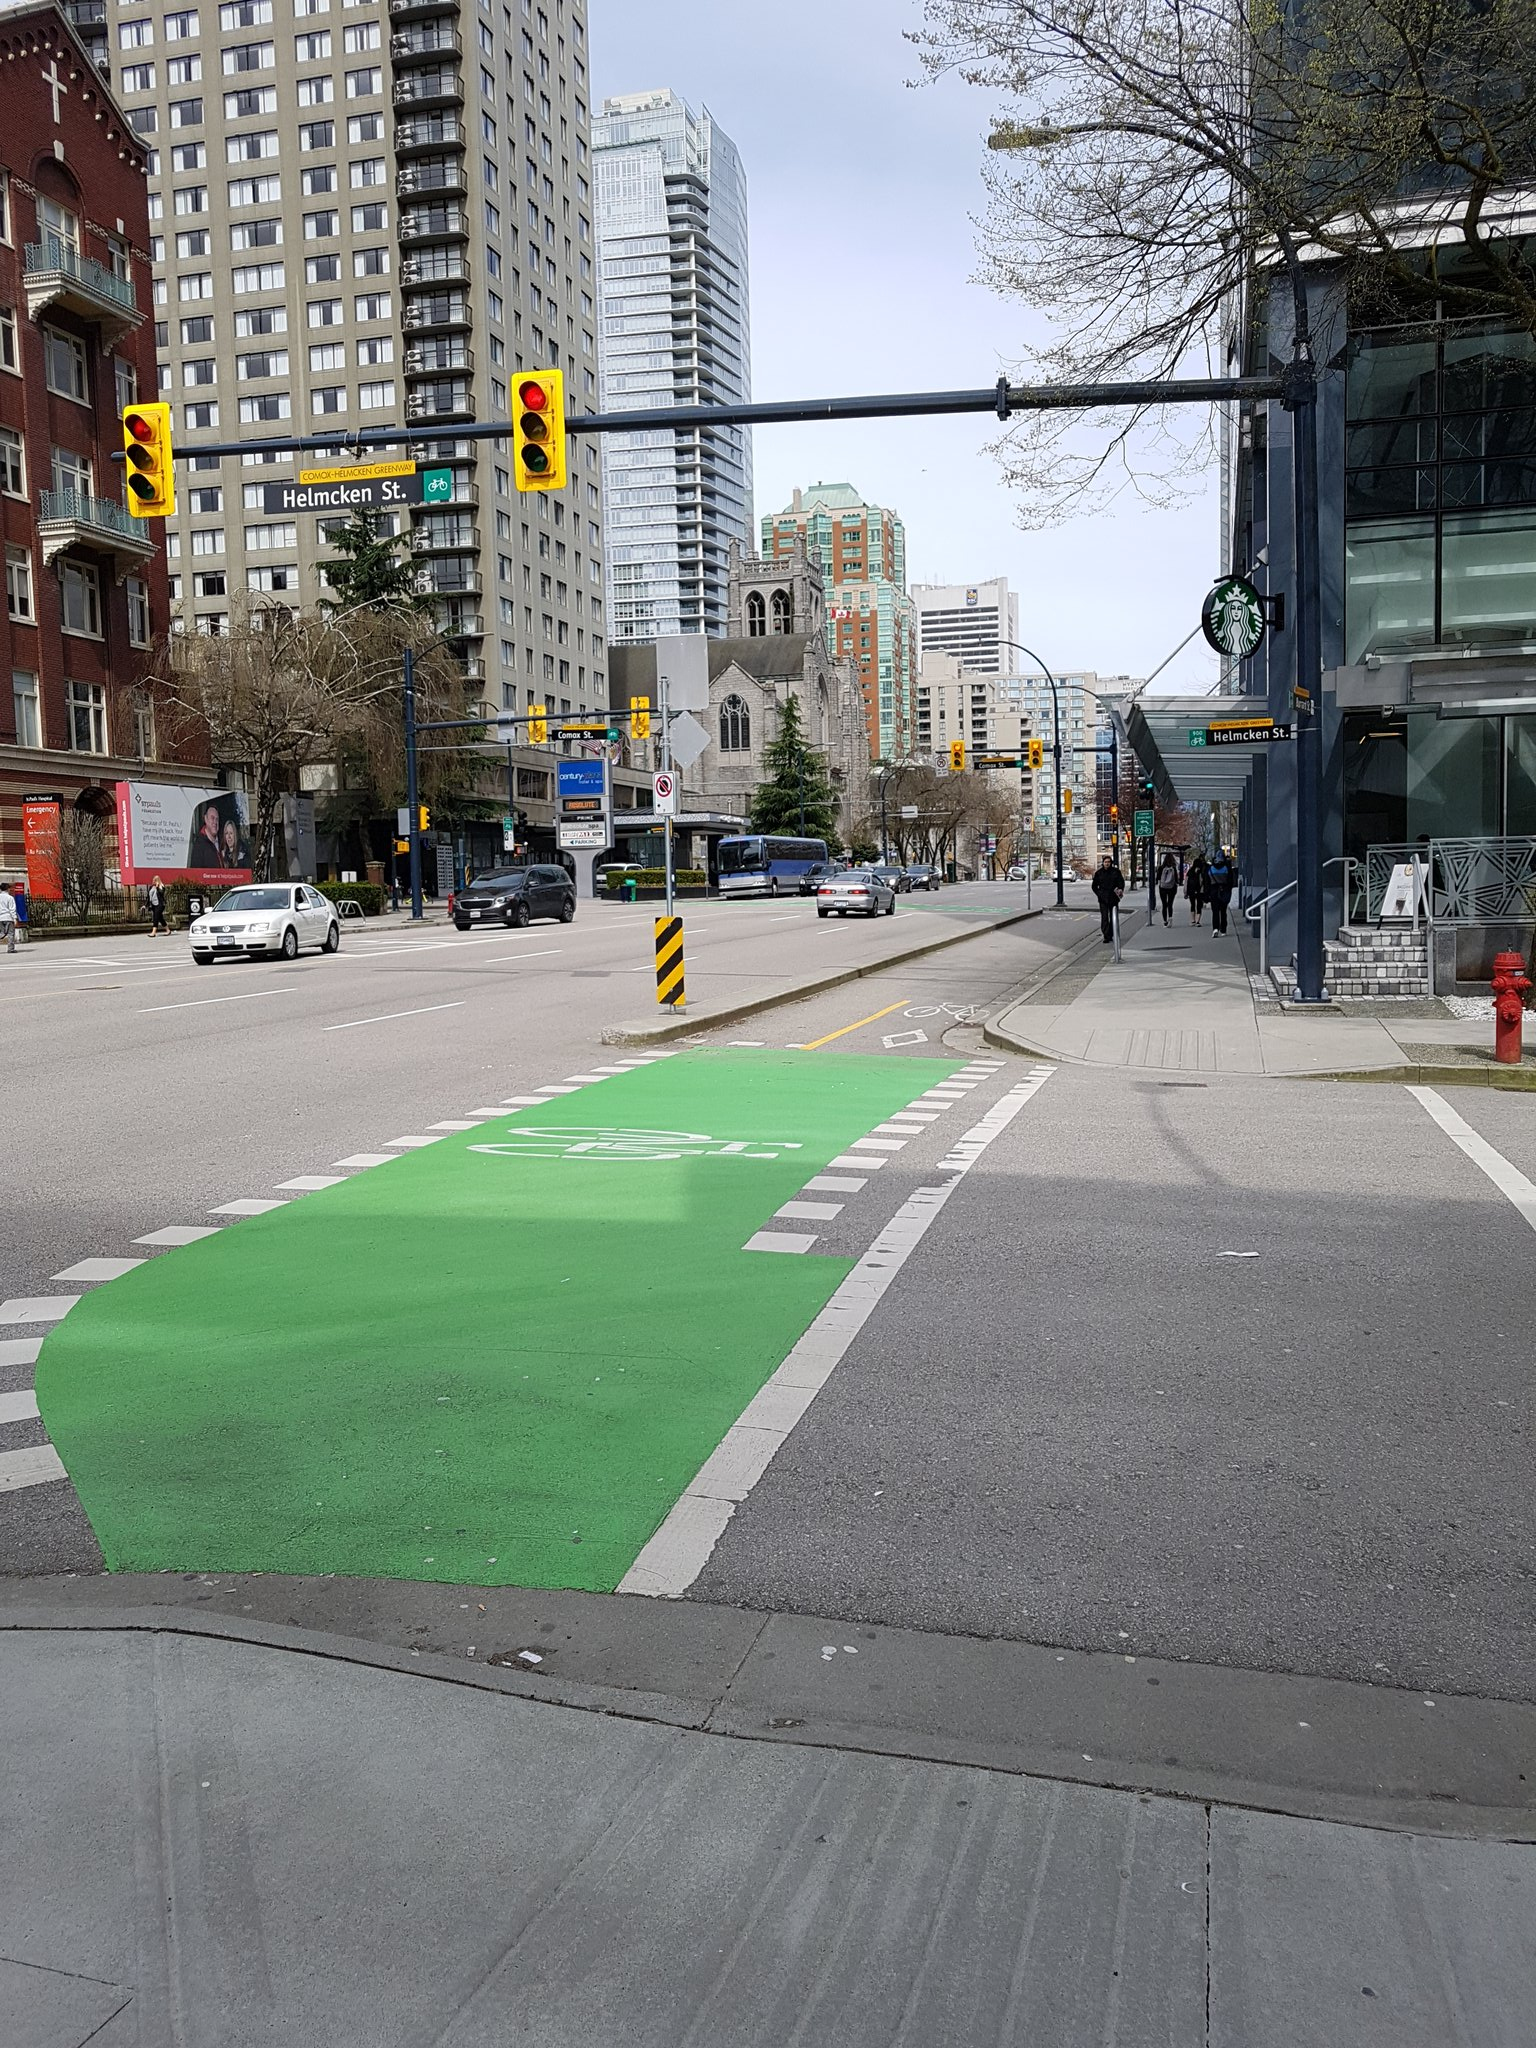 .@Musettecaffe Further north, the Comox-Helmcken Greenway jogs one block on Burrard & this short lane + light provide a AAA connection #yyjbike https://t.co/xJhKStHNCA